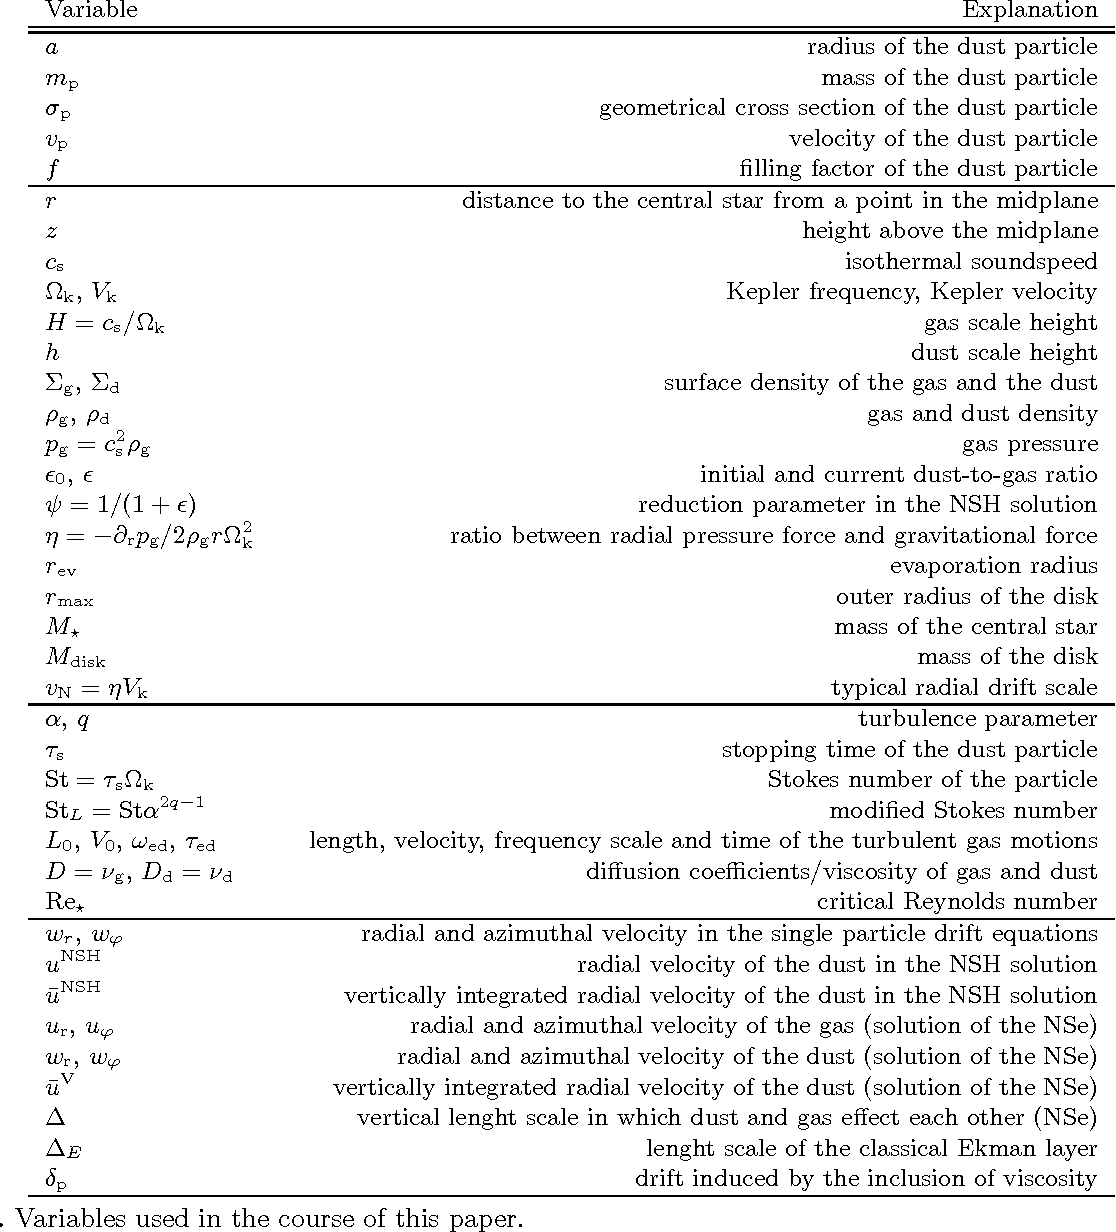 Table B.1. Variables used in the course of this paper.